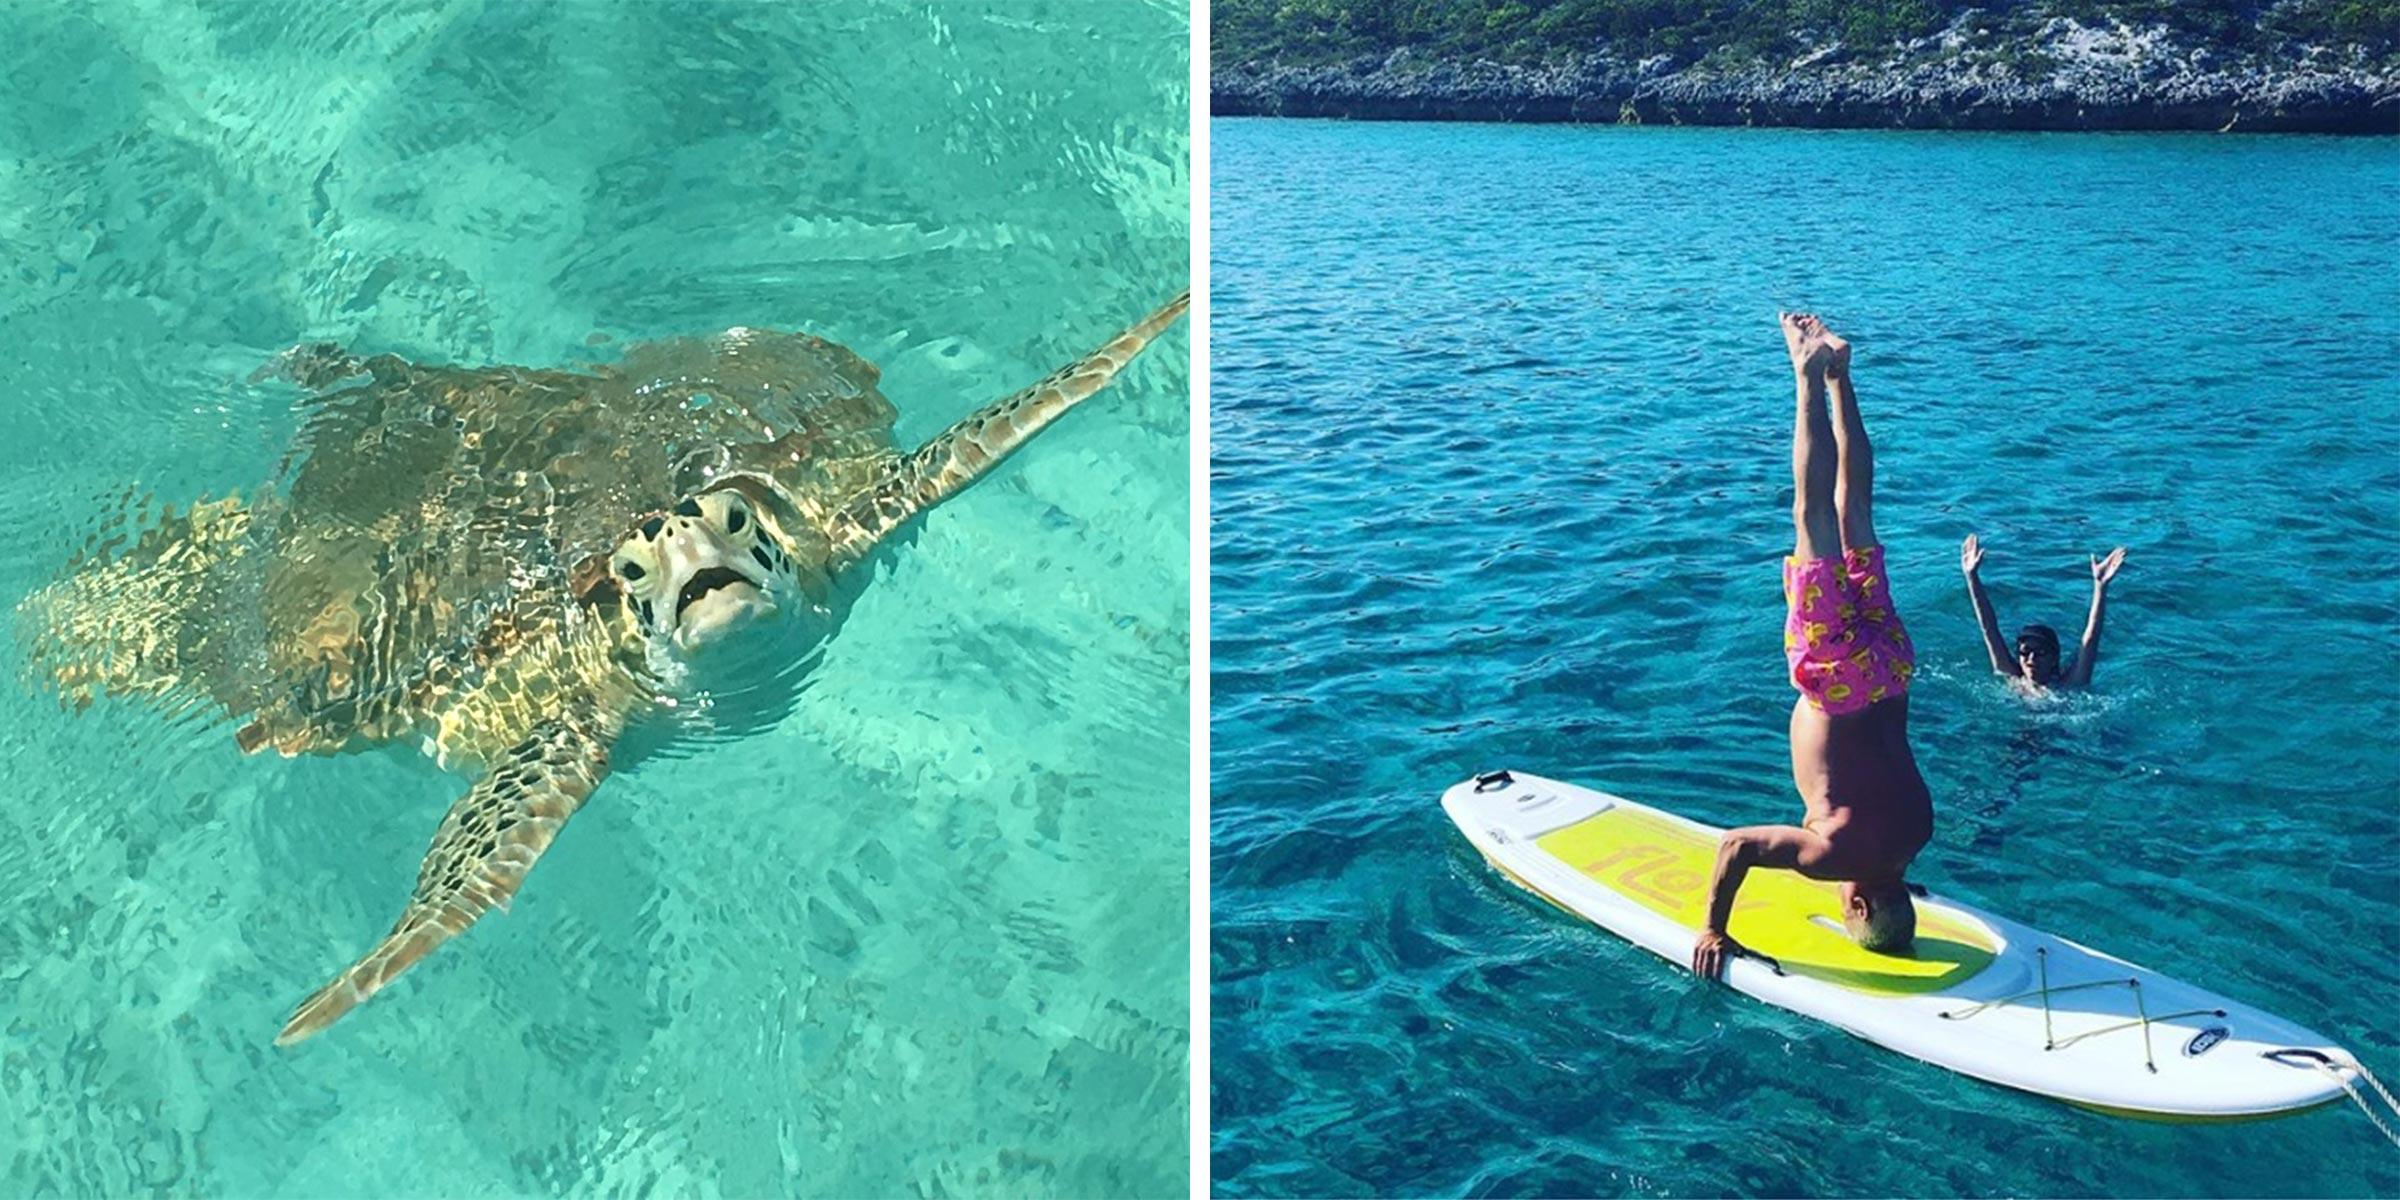 Turtle spotting and water sports fun in the Exumas